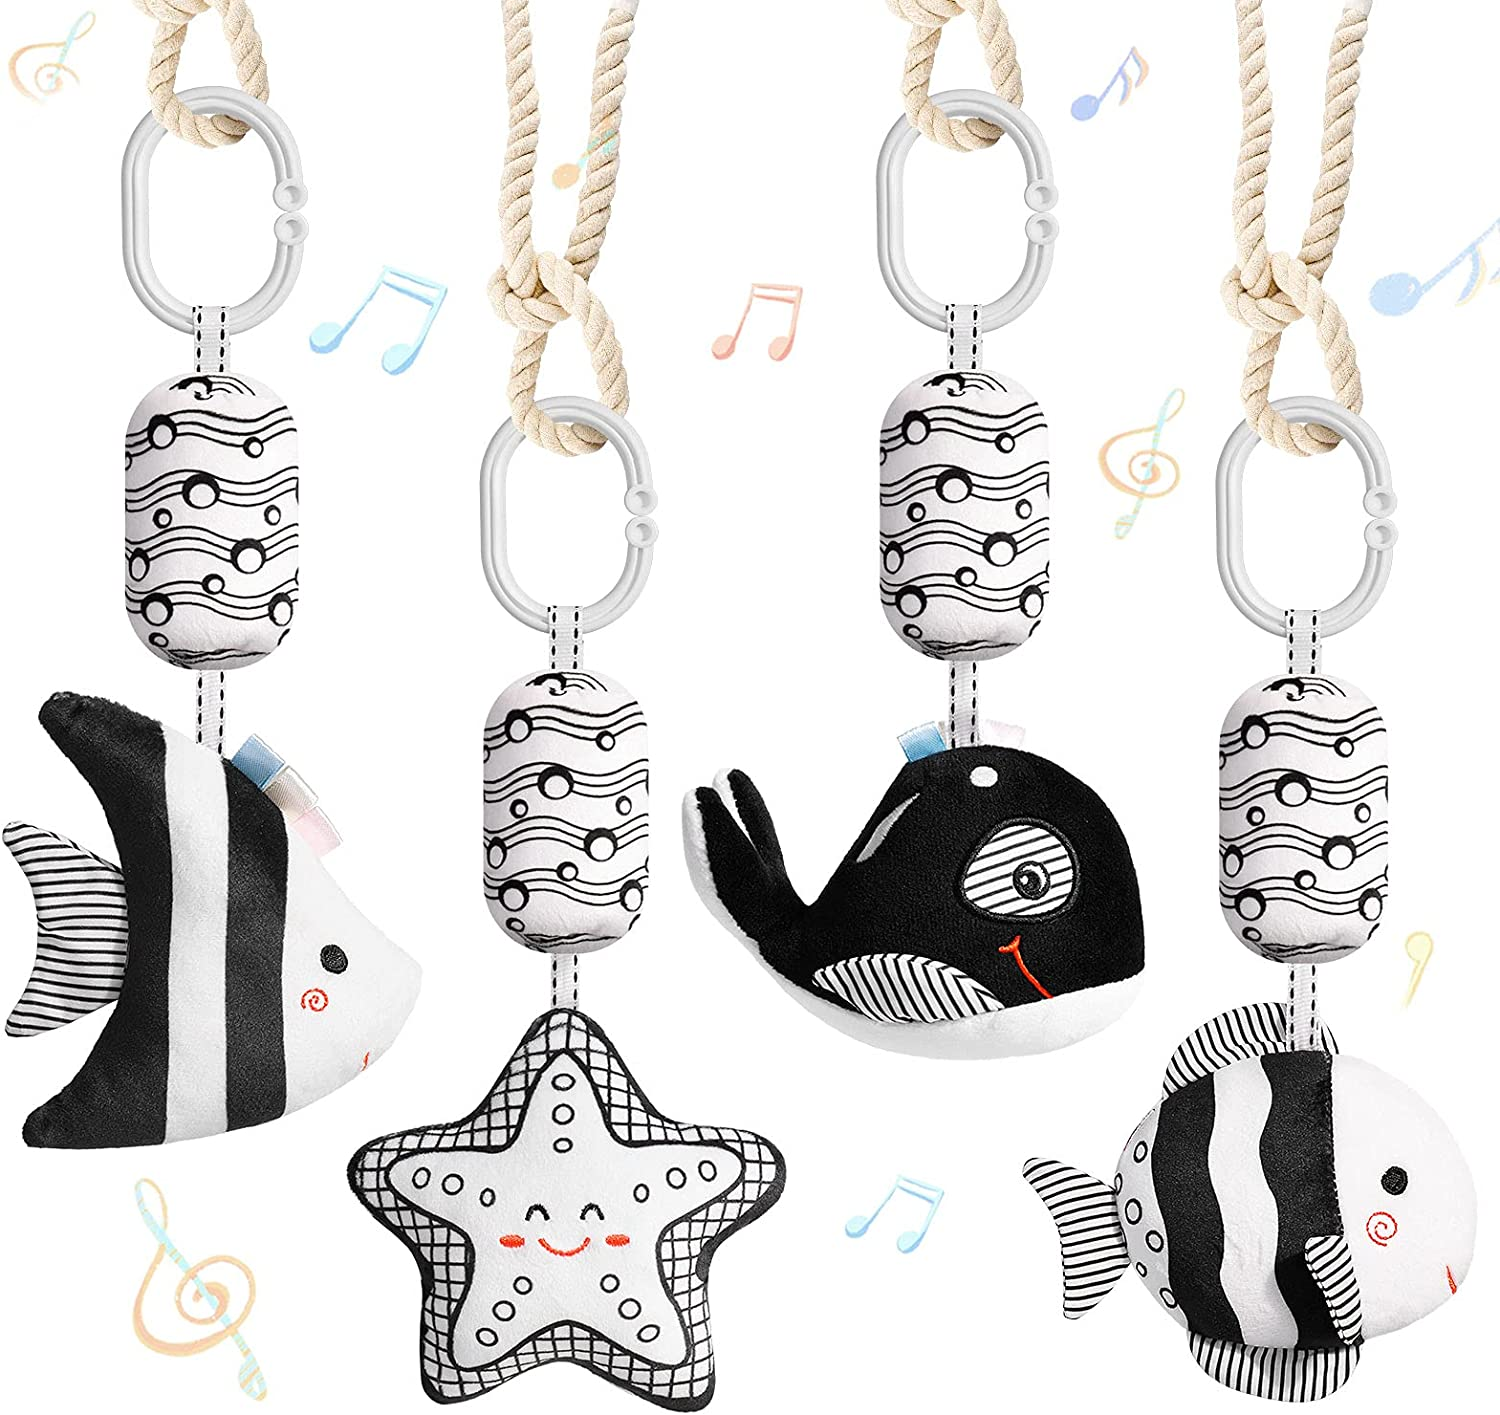 byesuro Baby Hanging Toys Stuffed Animal Bell Infant Stroller Rattle Toys - Crinkle Squeaky Cribs Car Seat New Born Toy with Wind Chimes Plush Toy Black and White Cute 0 3 6 9 to 12 Months